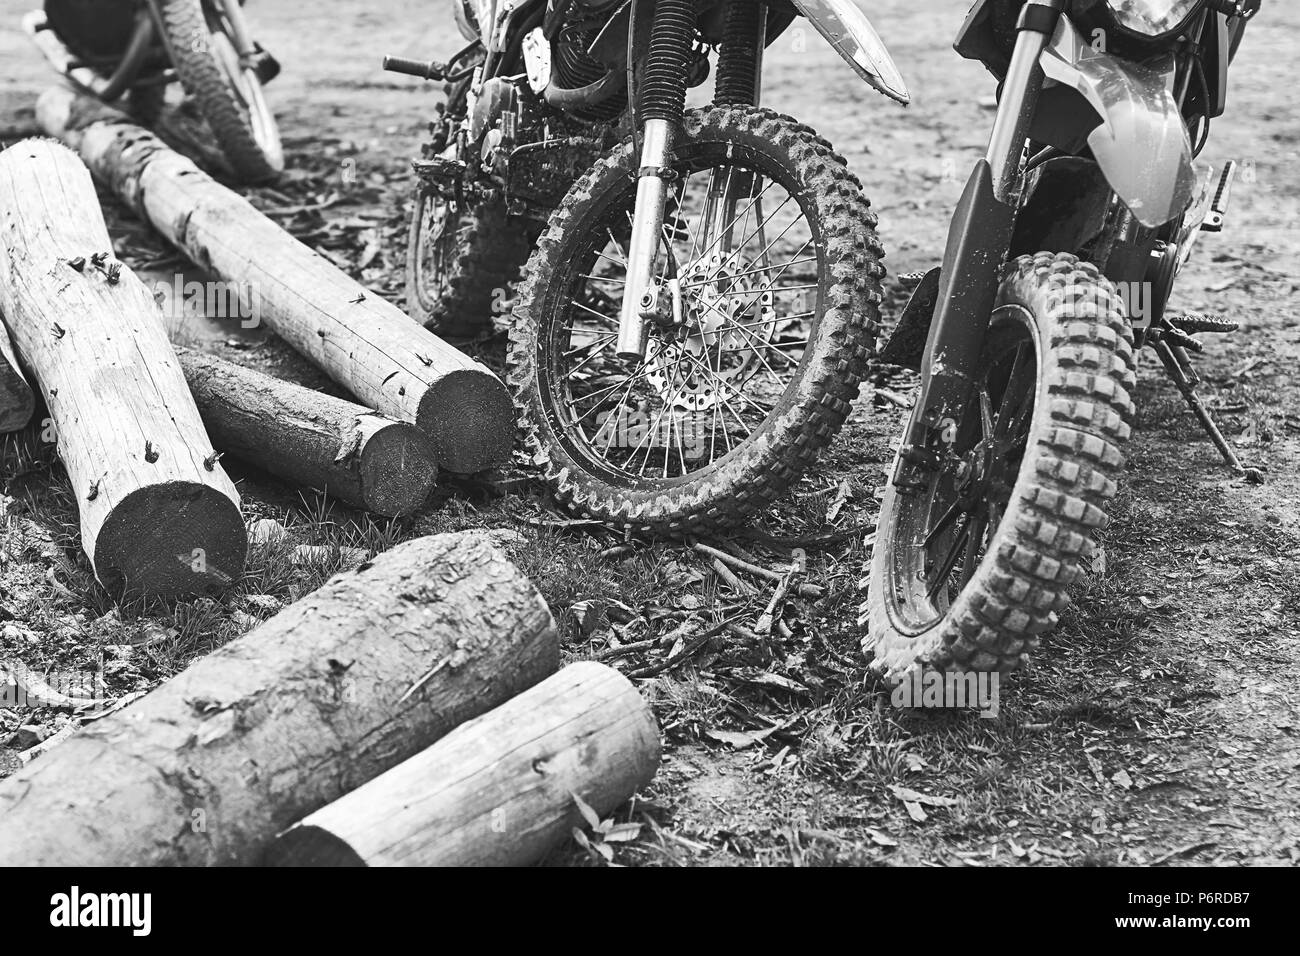 Offroad mountain motorcycles or bikes taking part in motocros competition parked on dirty terrain road with wooden logs - Stock Image